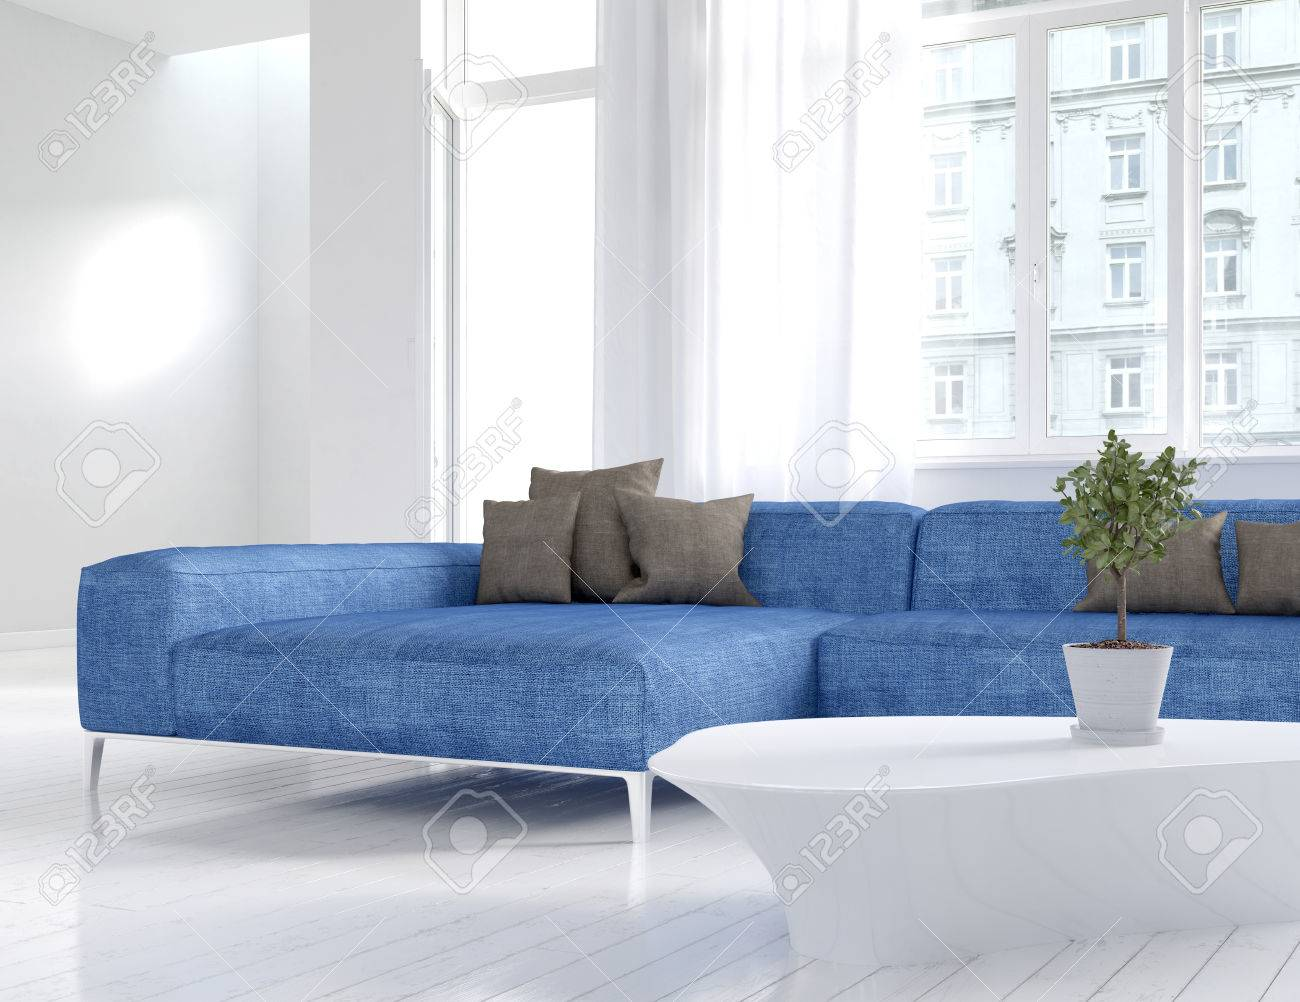 Picture Of White Living Room Interior With Blue Couch Stock Photo ...